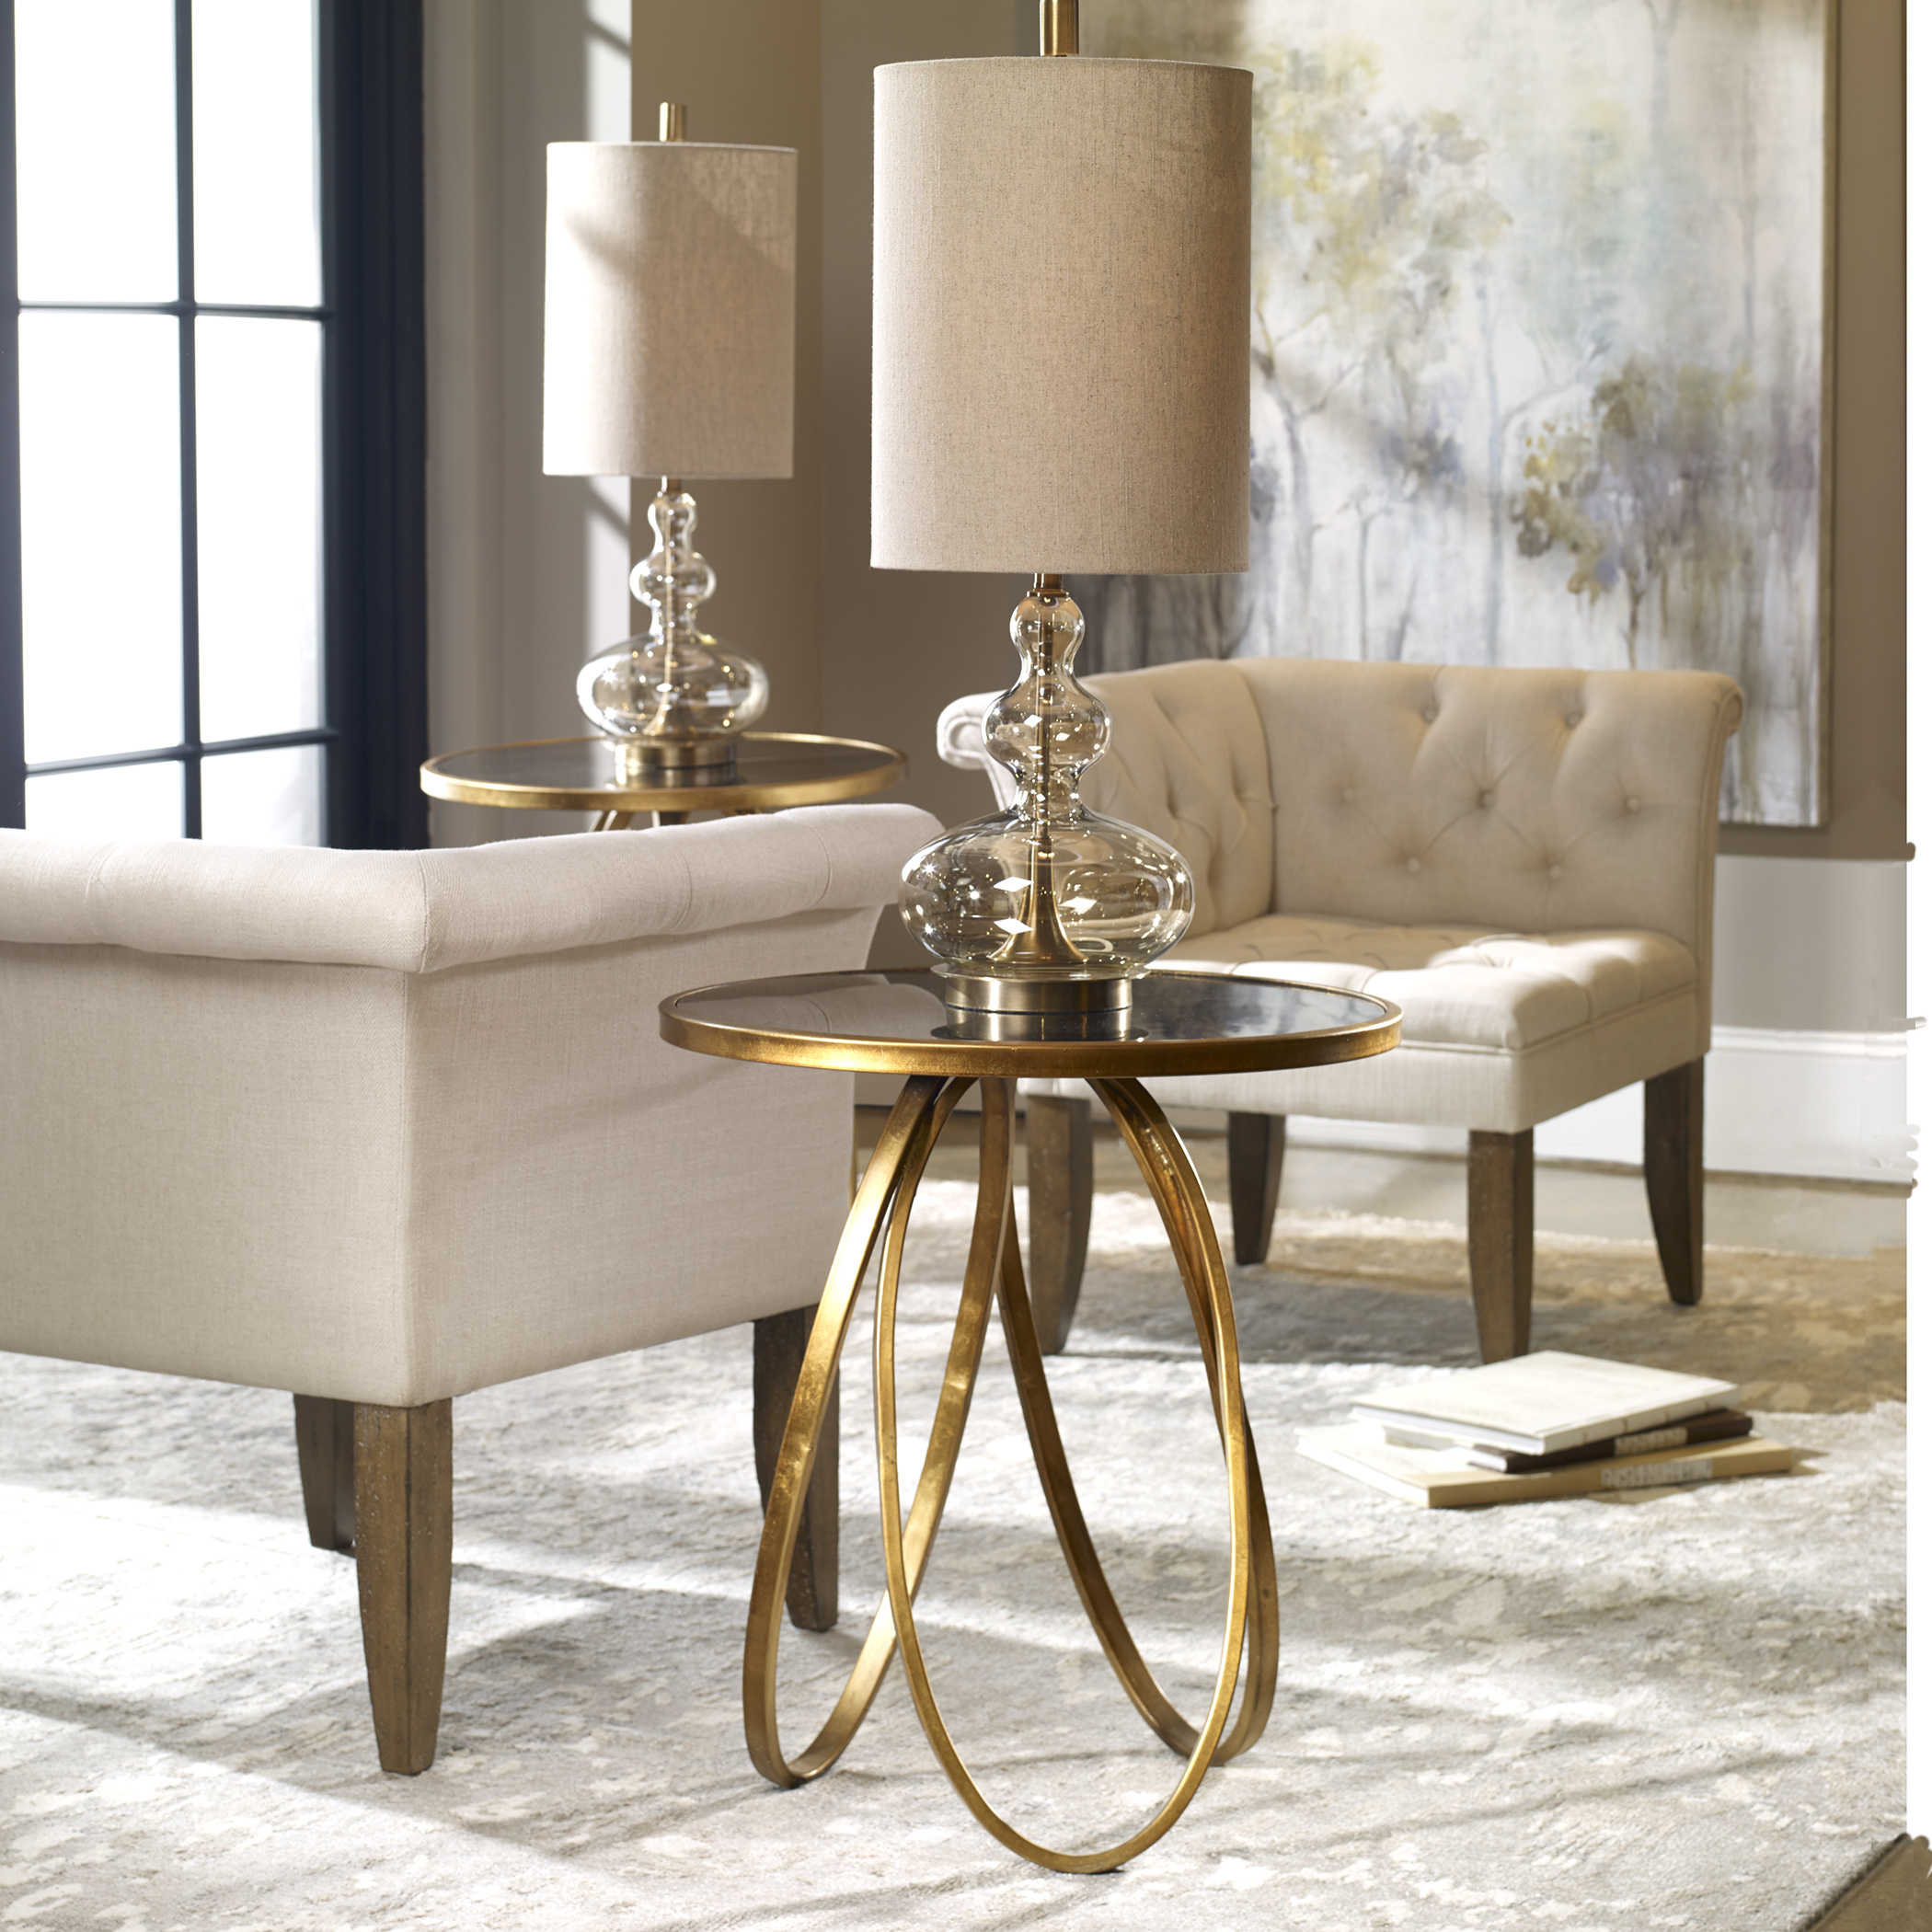 uttermost montrez gold accent table lucite coffee queen anne furniture storage drum home ornaments sofa side with drawer dale tiffany ceiling lamps pottery barn reading lamp